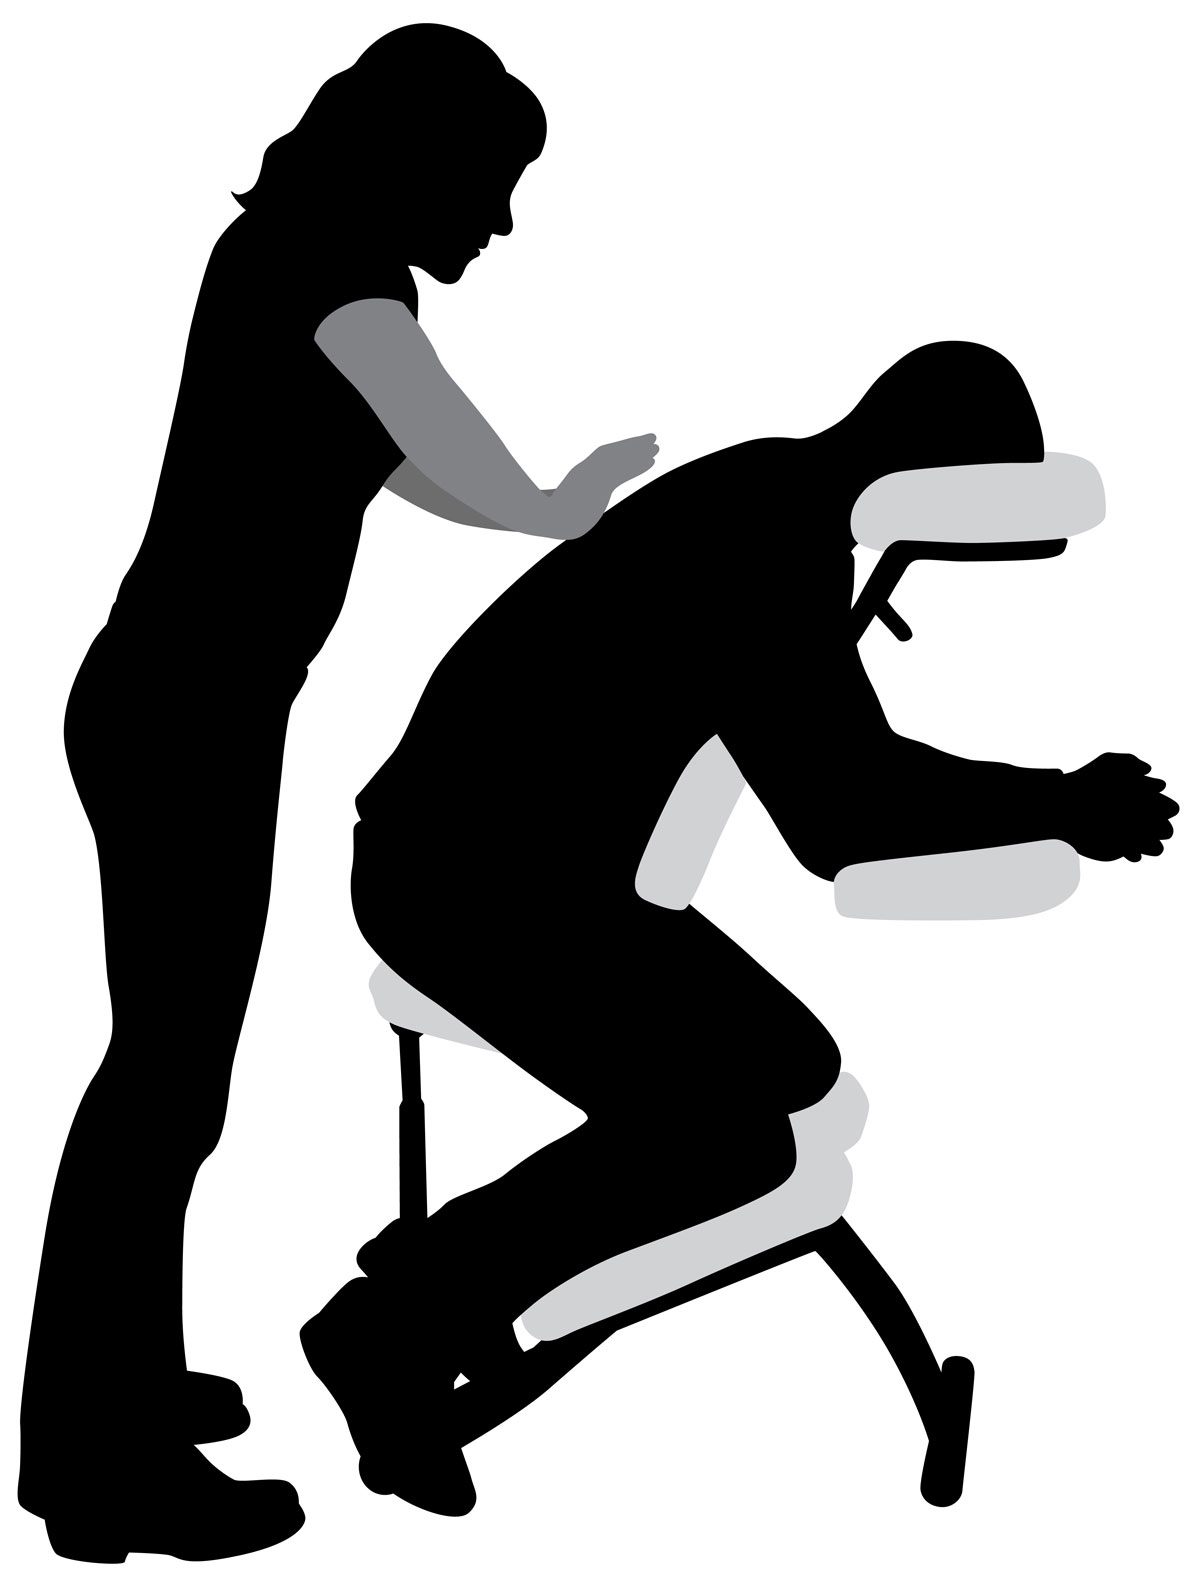 Chair massage clipart 5 » Clipart Station.